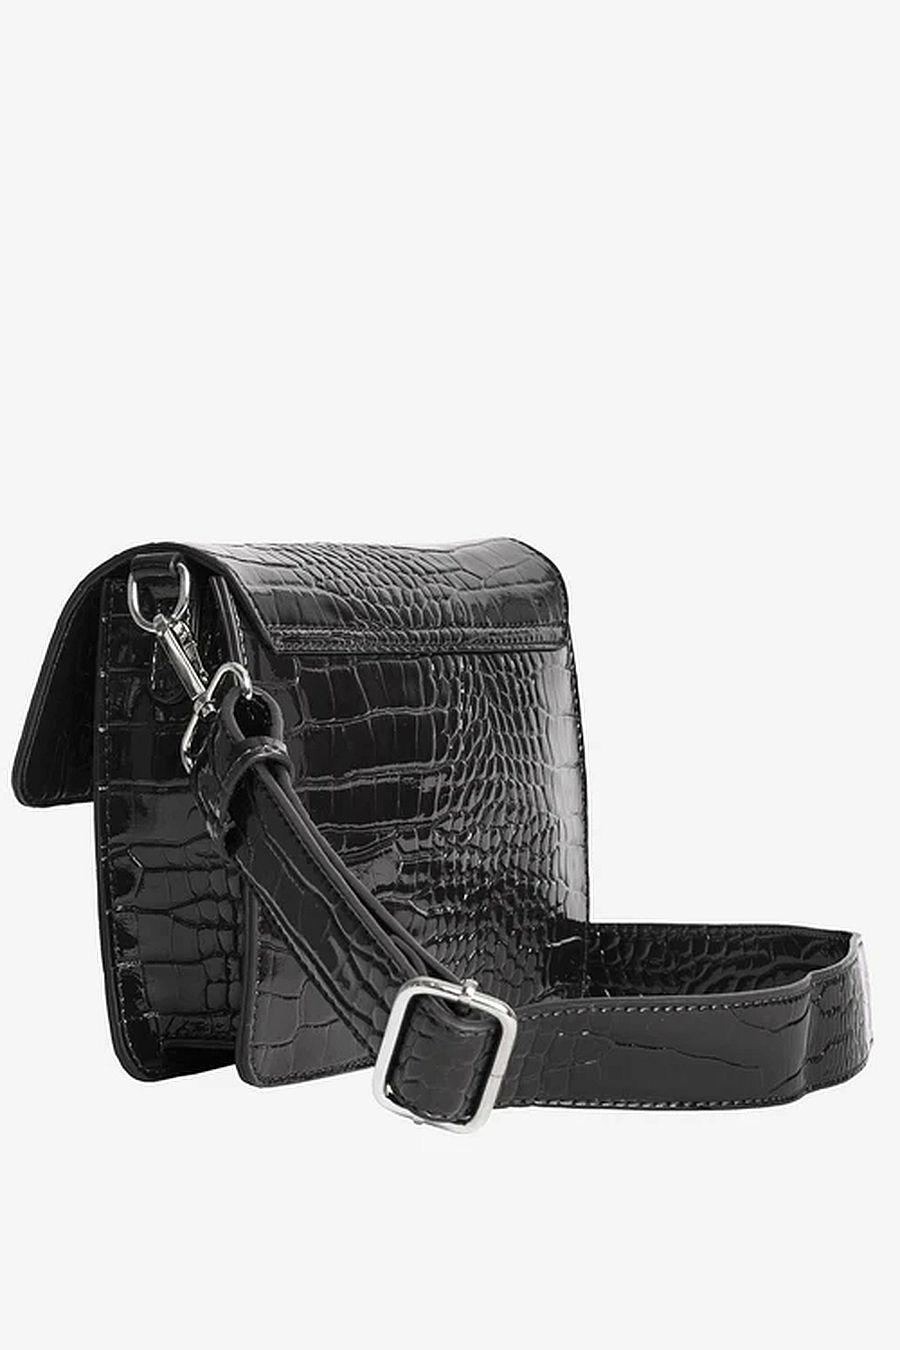 HVISK Cayman Pocket - Black